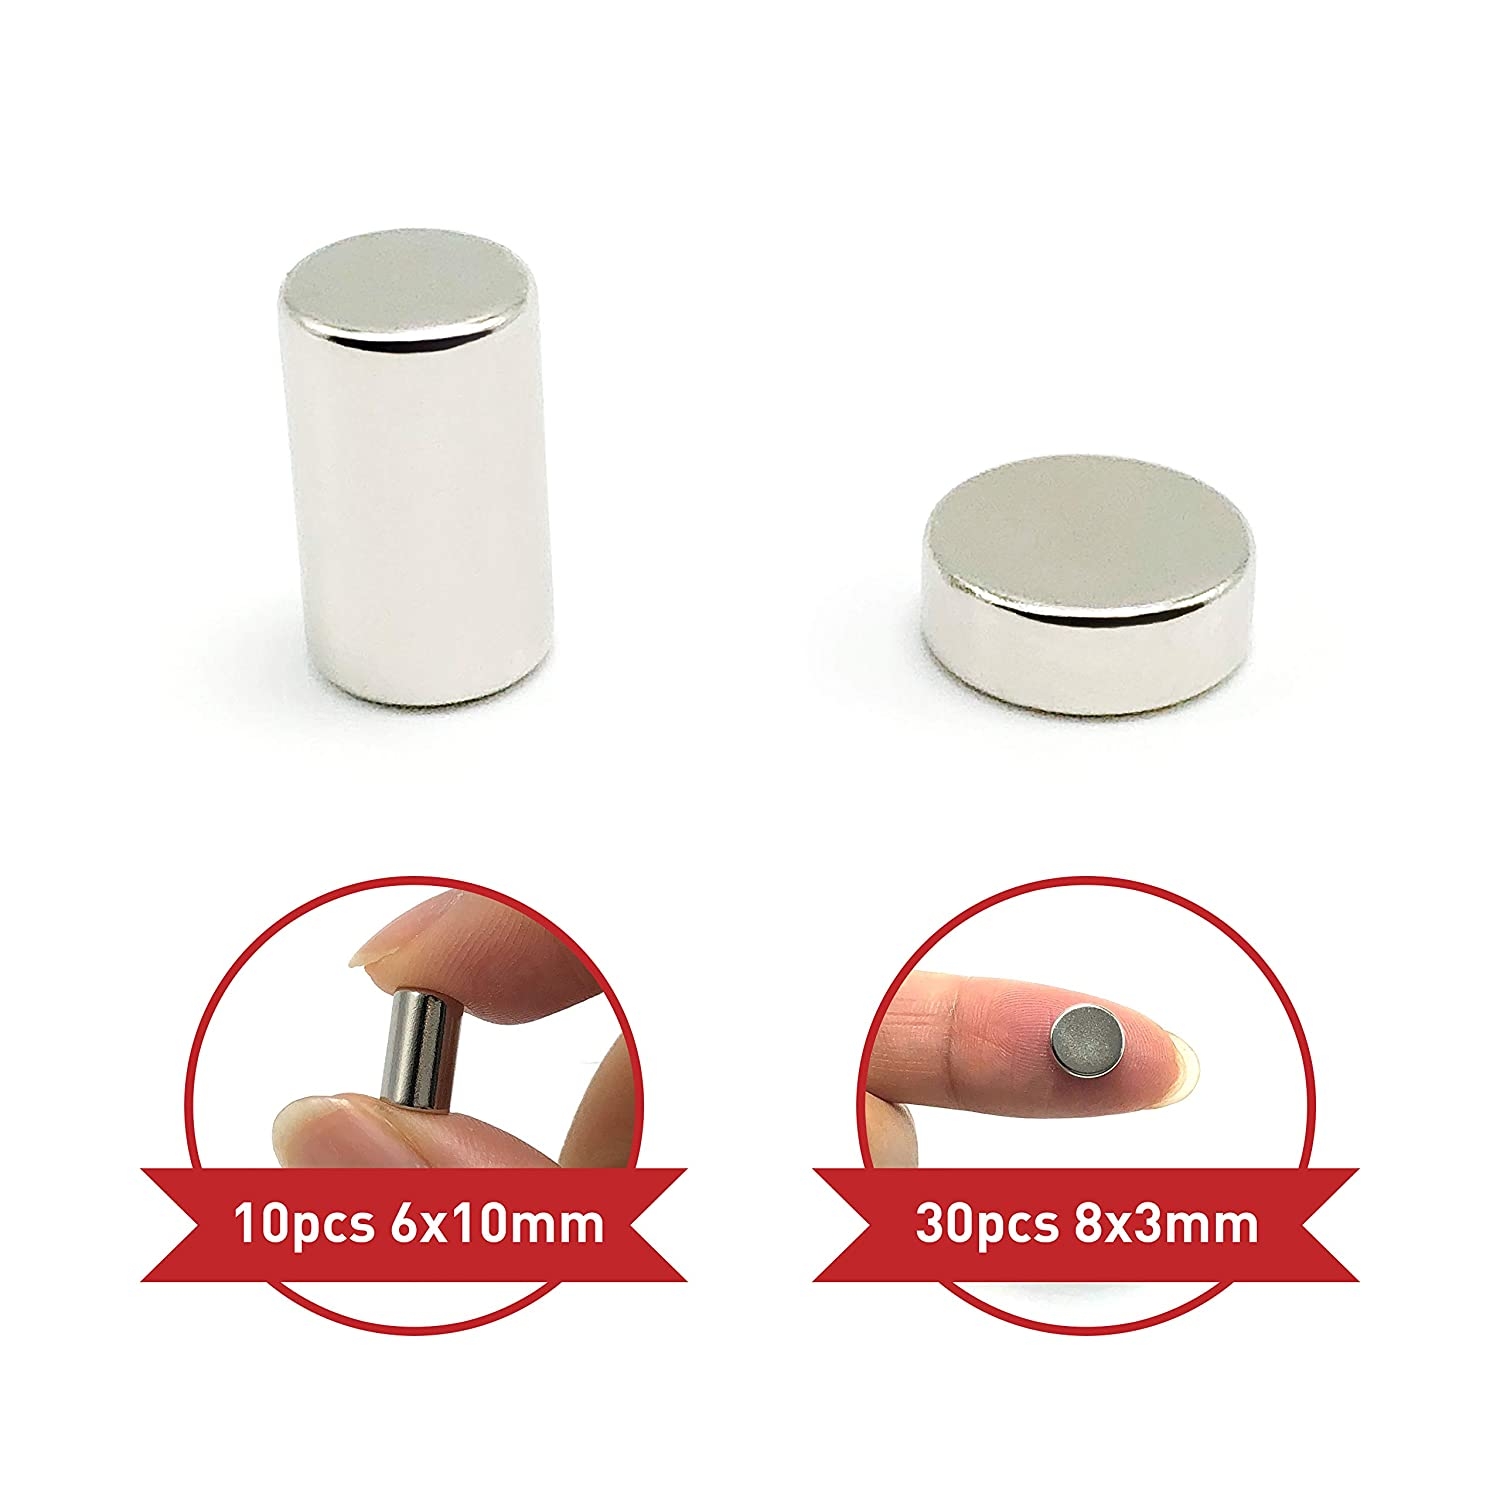 Stainless Steel Fridge Magnets by Theodora 40-Pack Refrigerator Magnets 10-pcs 6x10mm 30-pcs 8x3mm